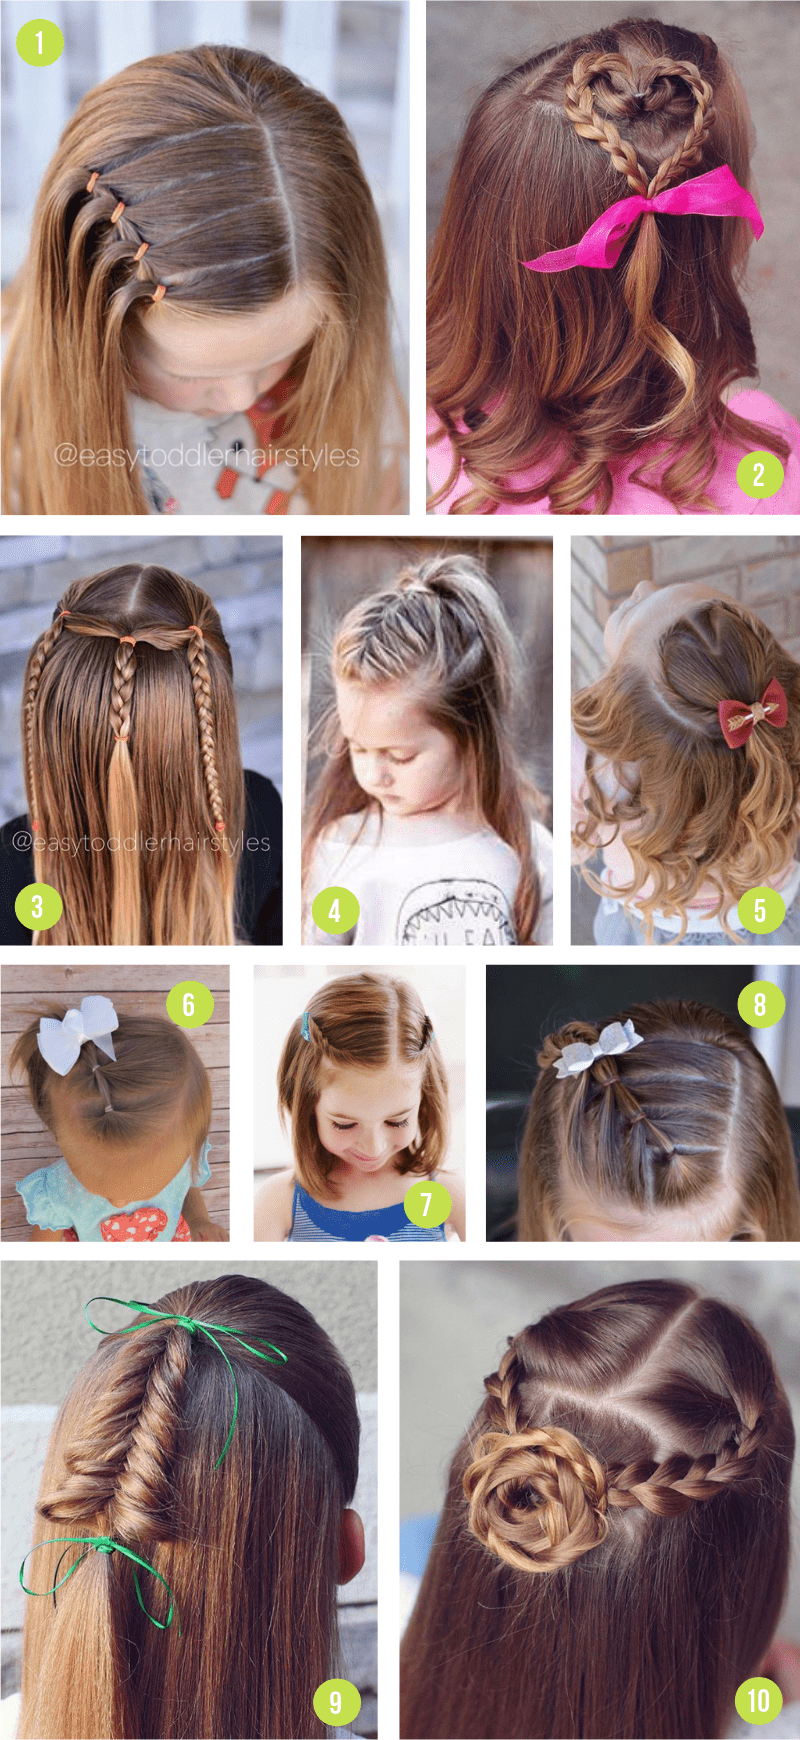 Easy Half Up Hairstyles For Girls From Toddlers To Tweens